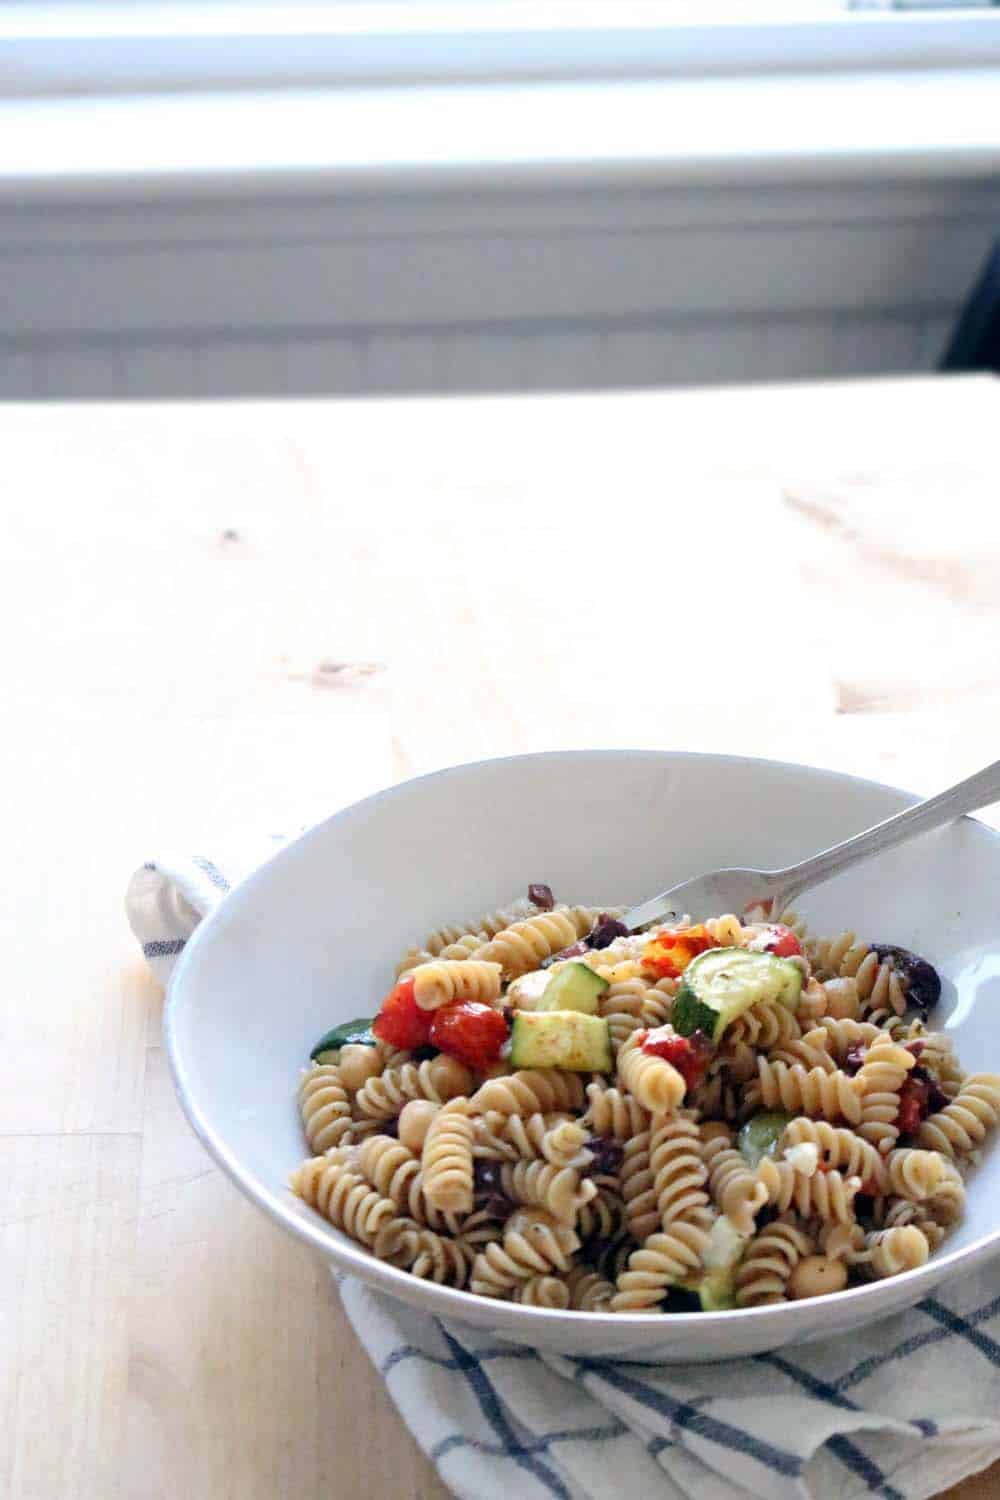 Antipasto Pesto Salad | This pasta salad is DELICIOUS, easy to make in bulk, and is served cold so it can be made ahead of time and pulled right out of your fridge before serving. The dressing makes for a salty-sweet flavor combination that's awesome for a hot summer's day. Plus, it's 100% real, clean, and unprocessed!